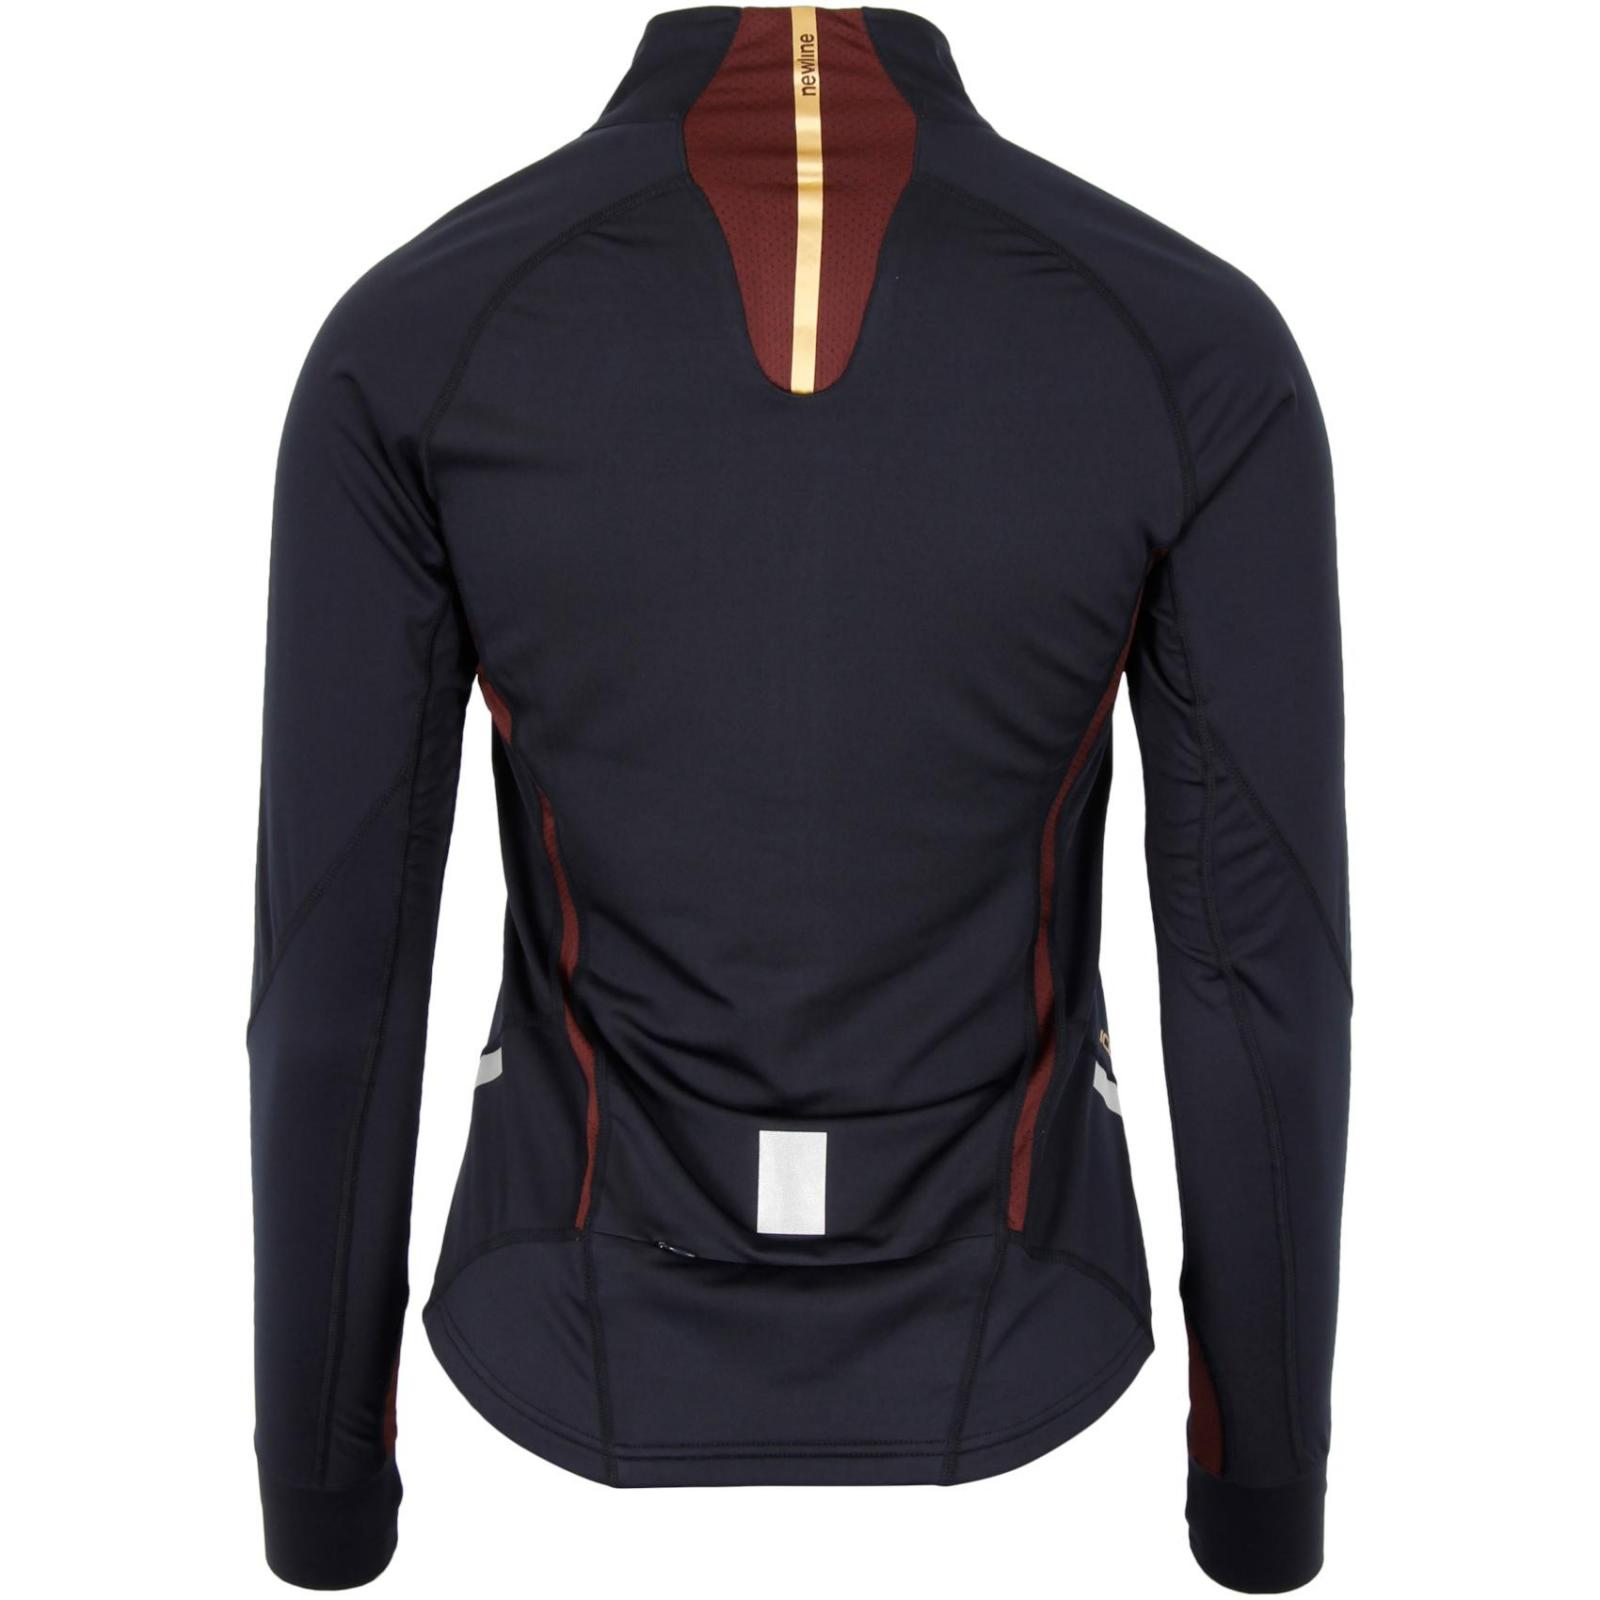 NEWLINE ICONIC PROTECT JACKET